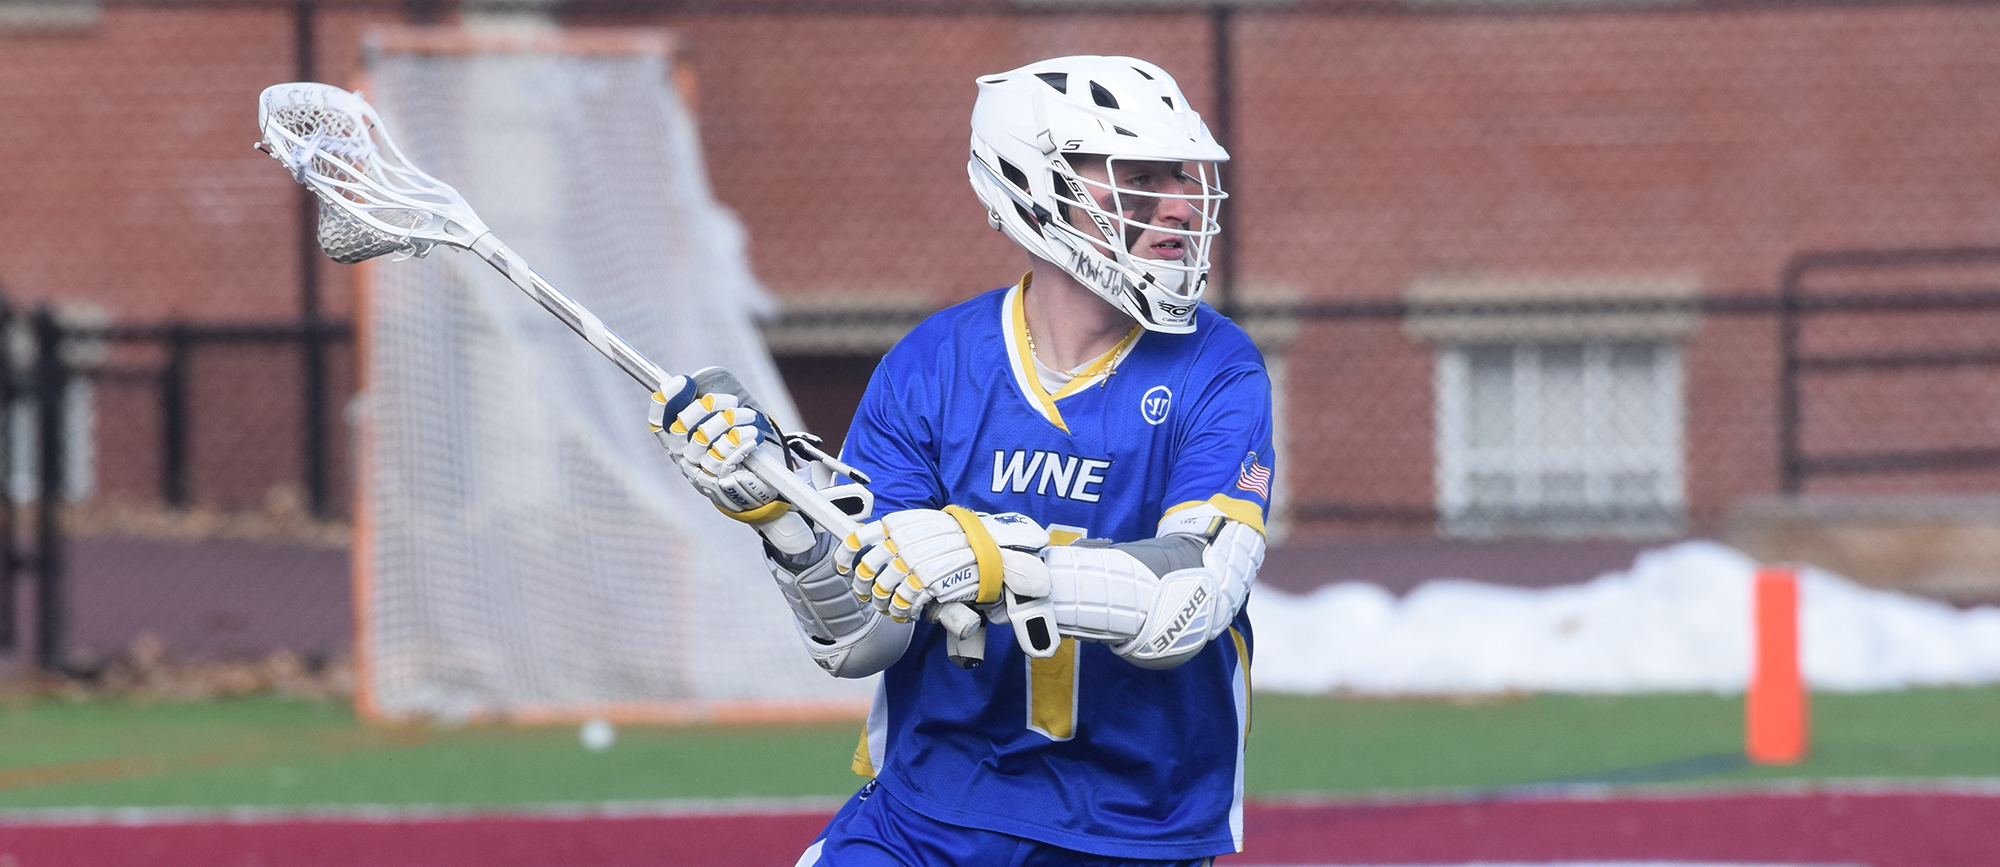 Senior Mikey Wood scored three goals in Western New England's 12-9 win at UNE on Saturday. (Photo by Rachael Margossian)